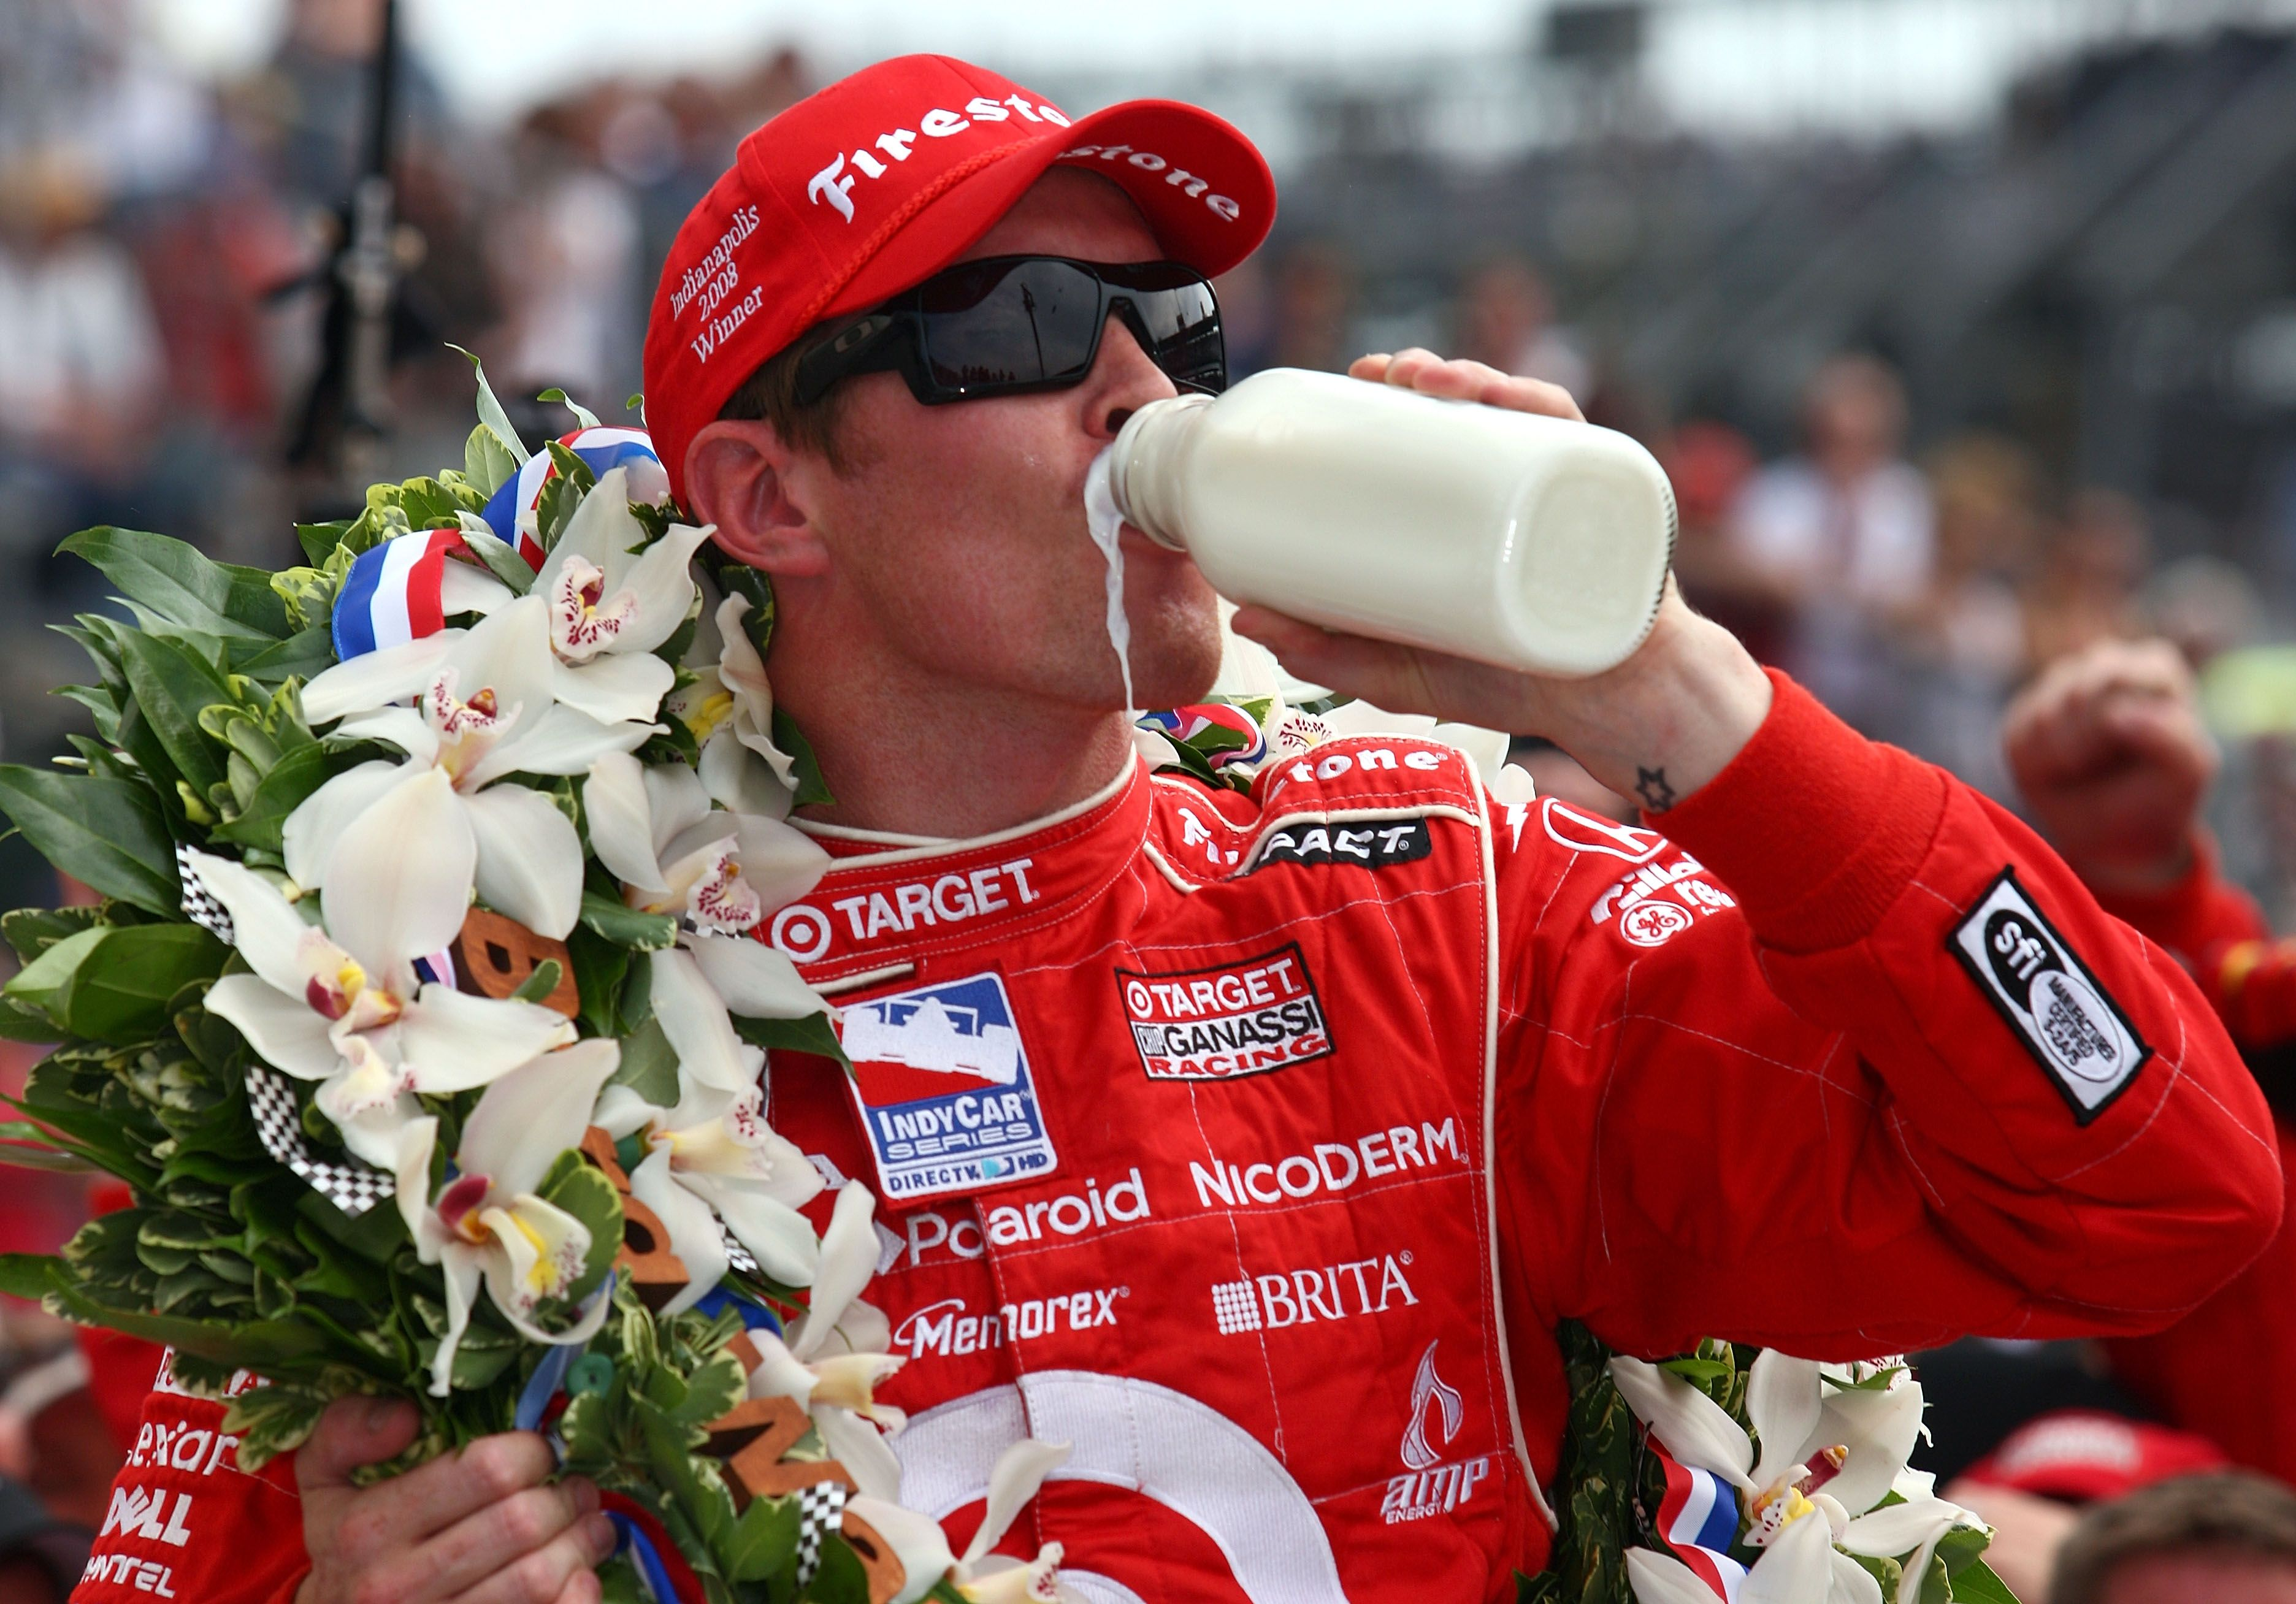 Why Is Big Dairy Keeping Buttermilk Away from Indy 500 Winners?